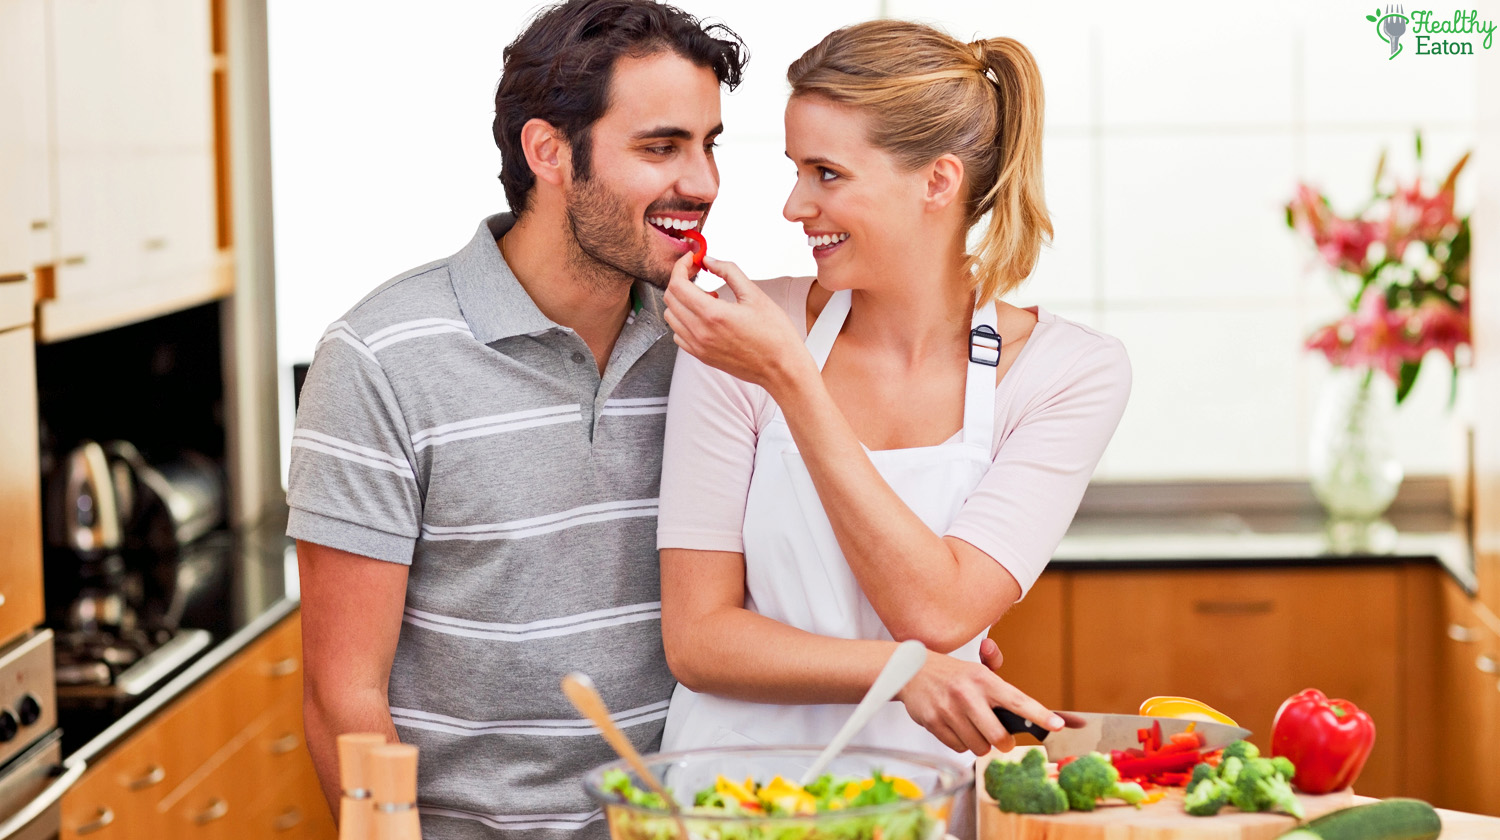 Happy Couple With Healthy Food